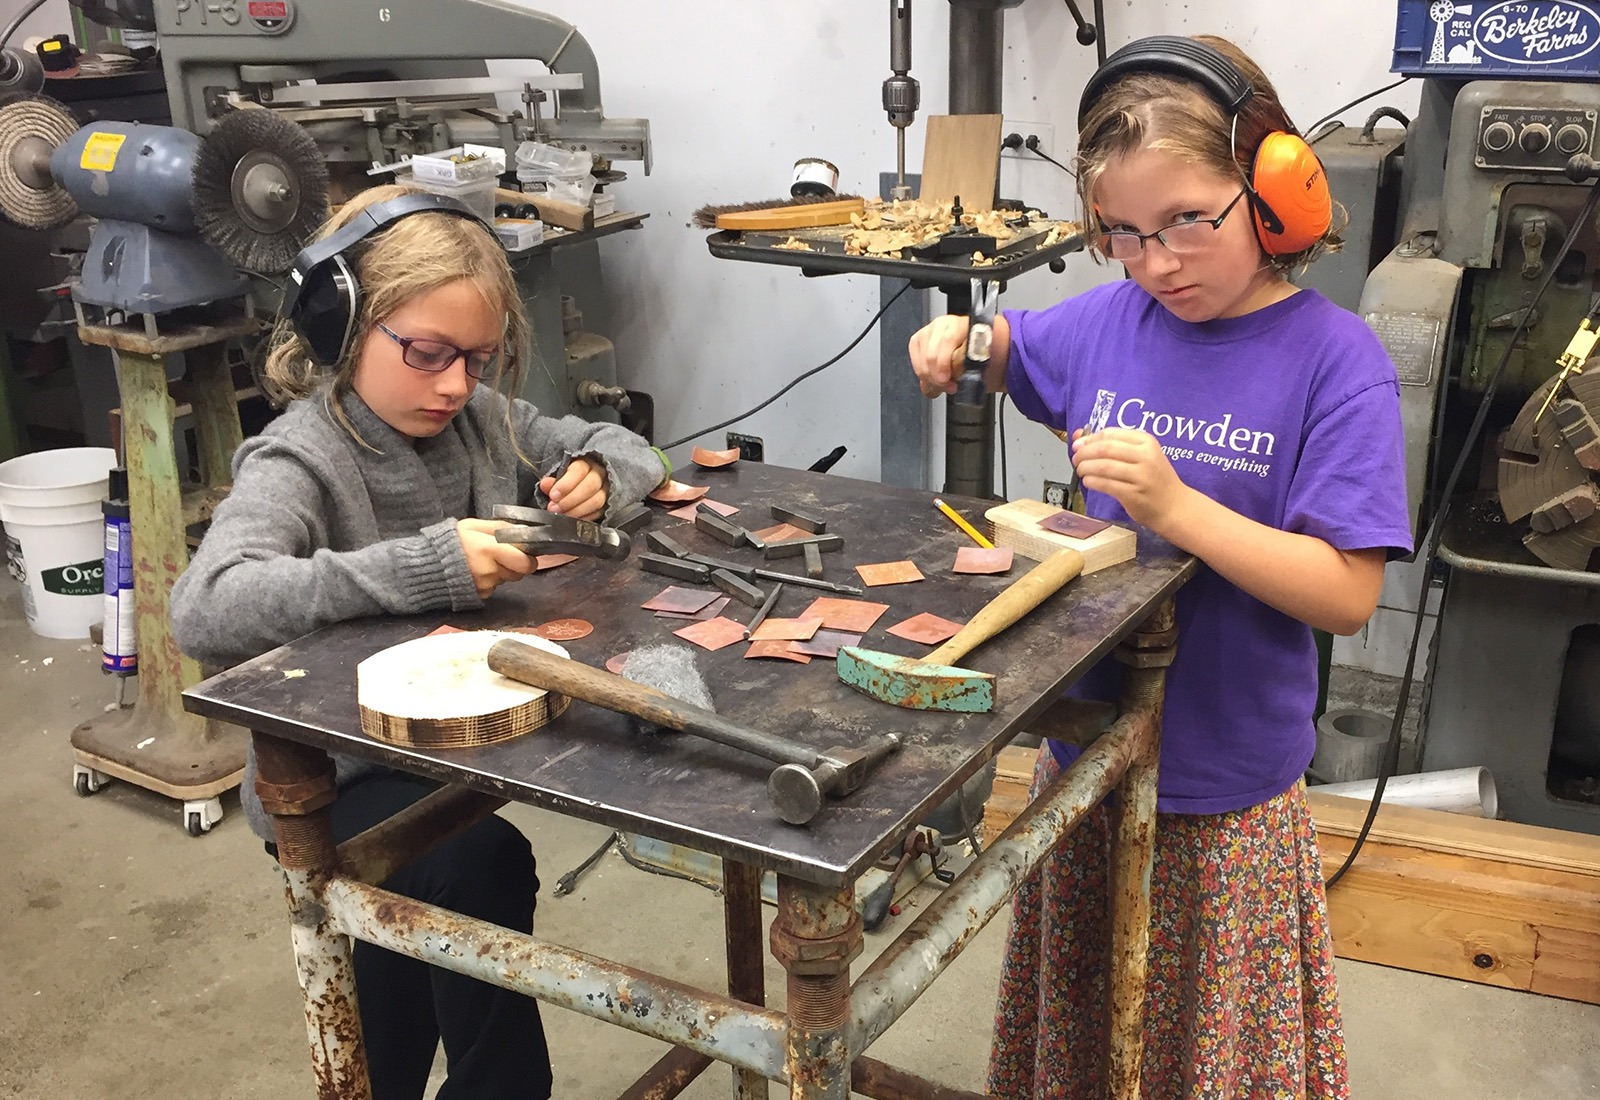 Lilah Lloyd and her twin sister Phoebe use texturing tools to make designs on copper, in their father's garage workshop.